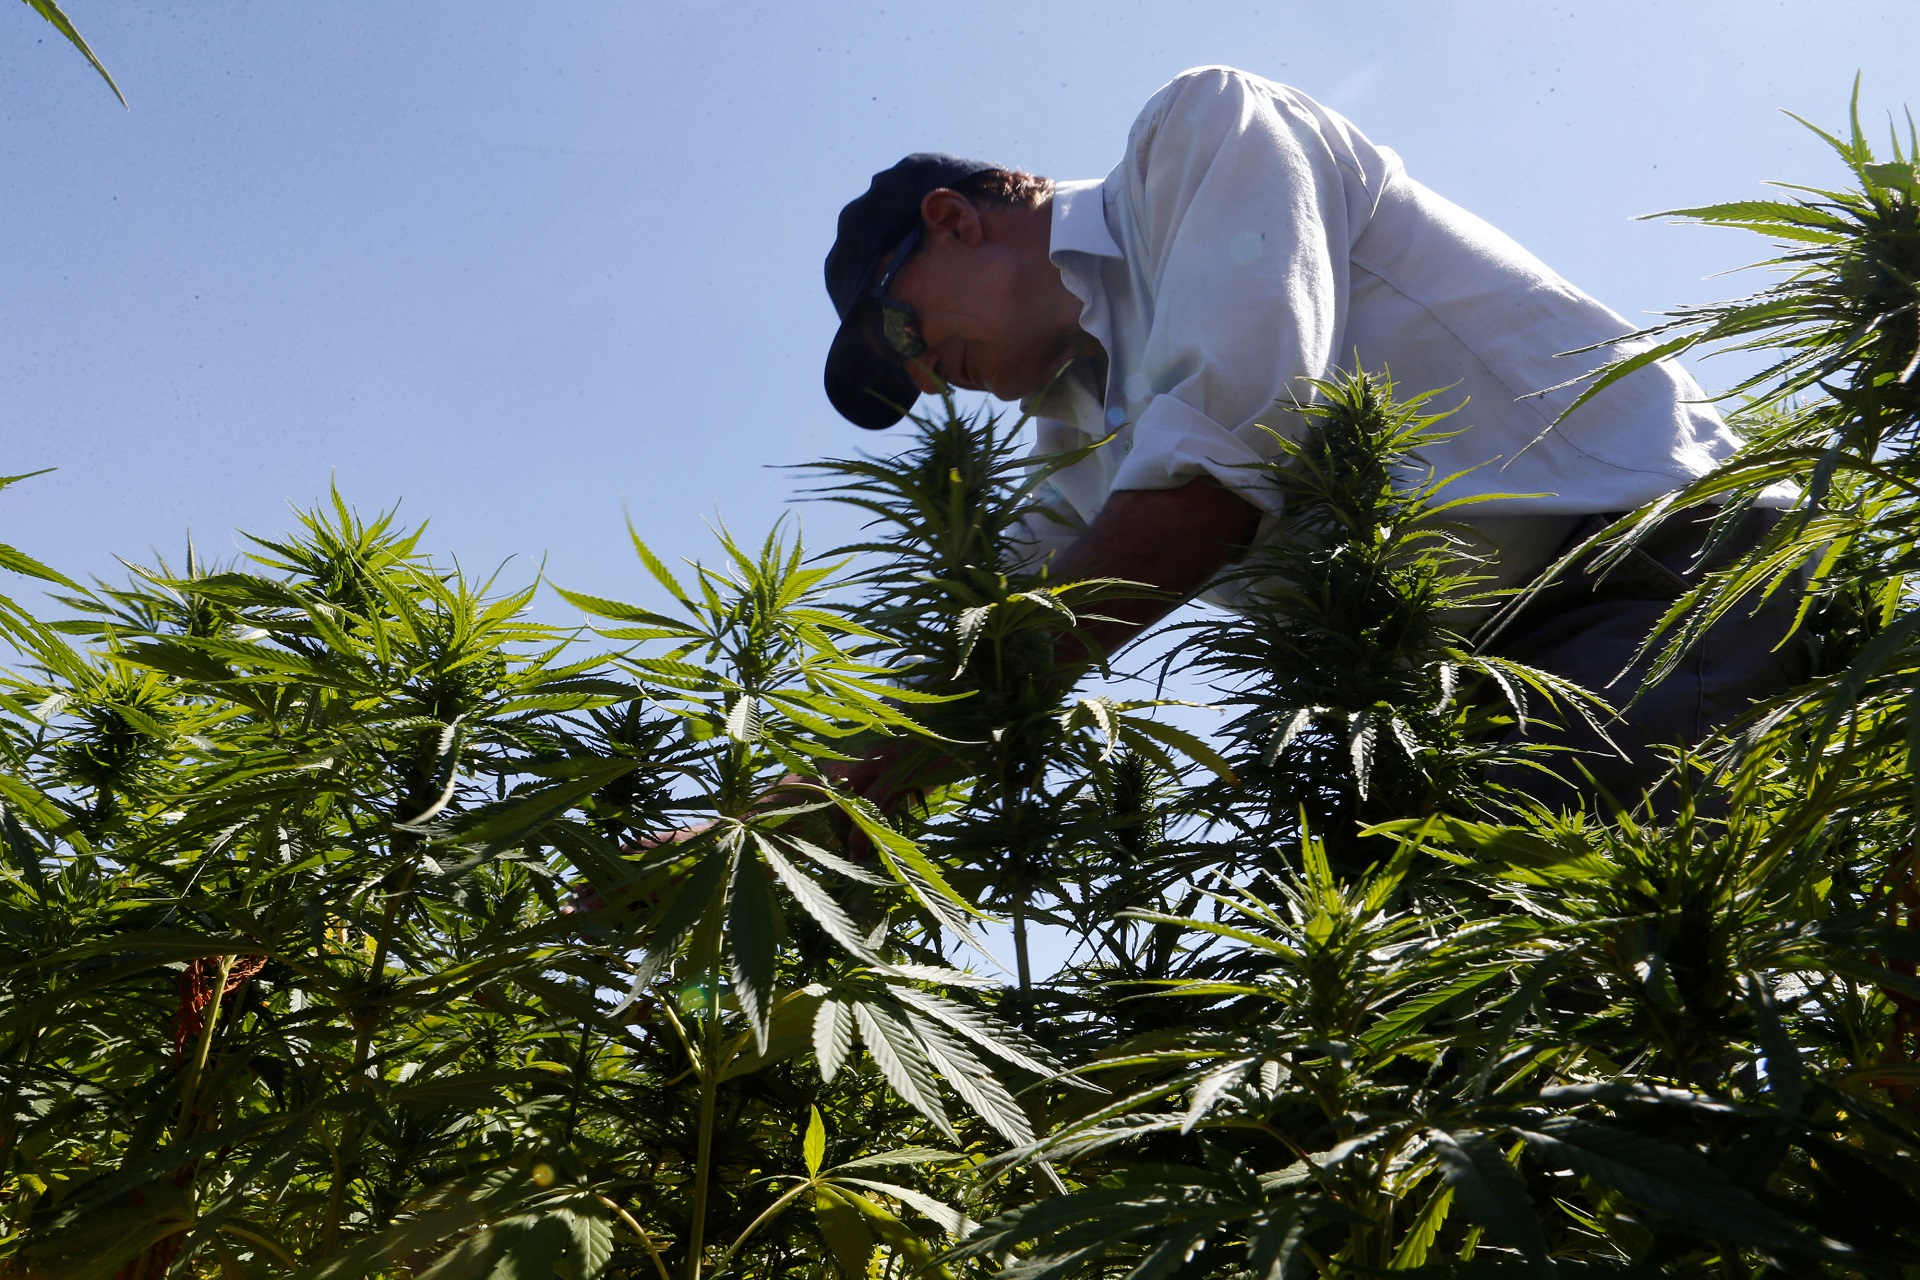 AdvisorShares Pure US Cannabis ETF: a Good Vehicle to Approach the Buzzword Еmerging Sector